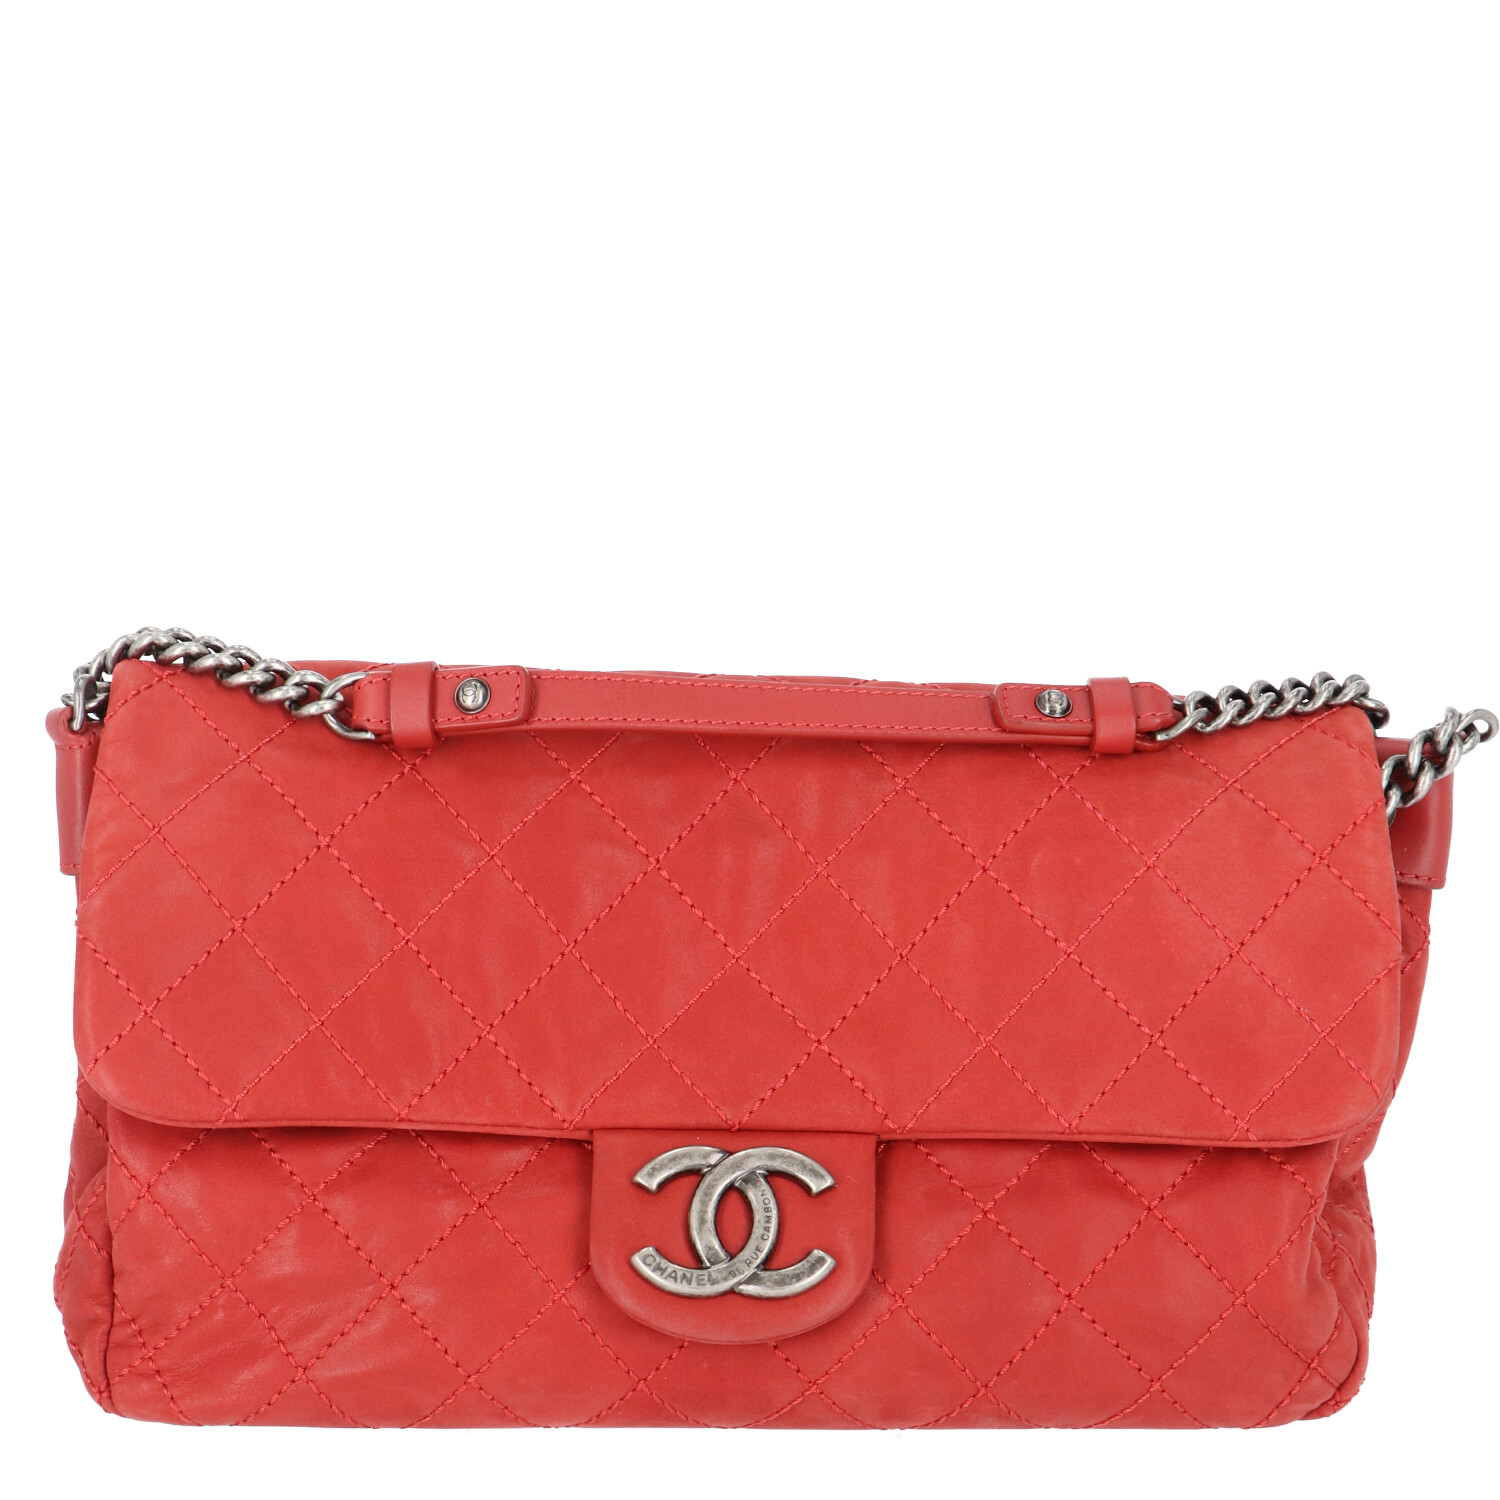 Chanel Red Suede Specialty Flap Bag